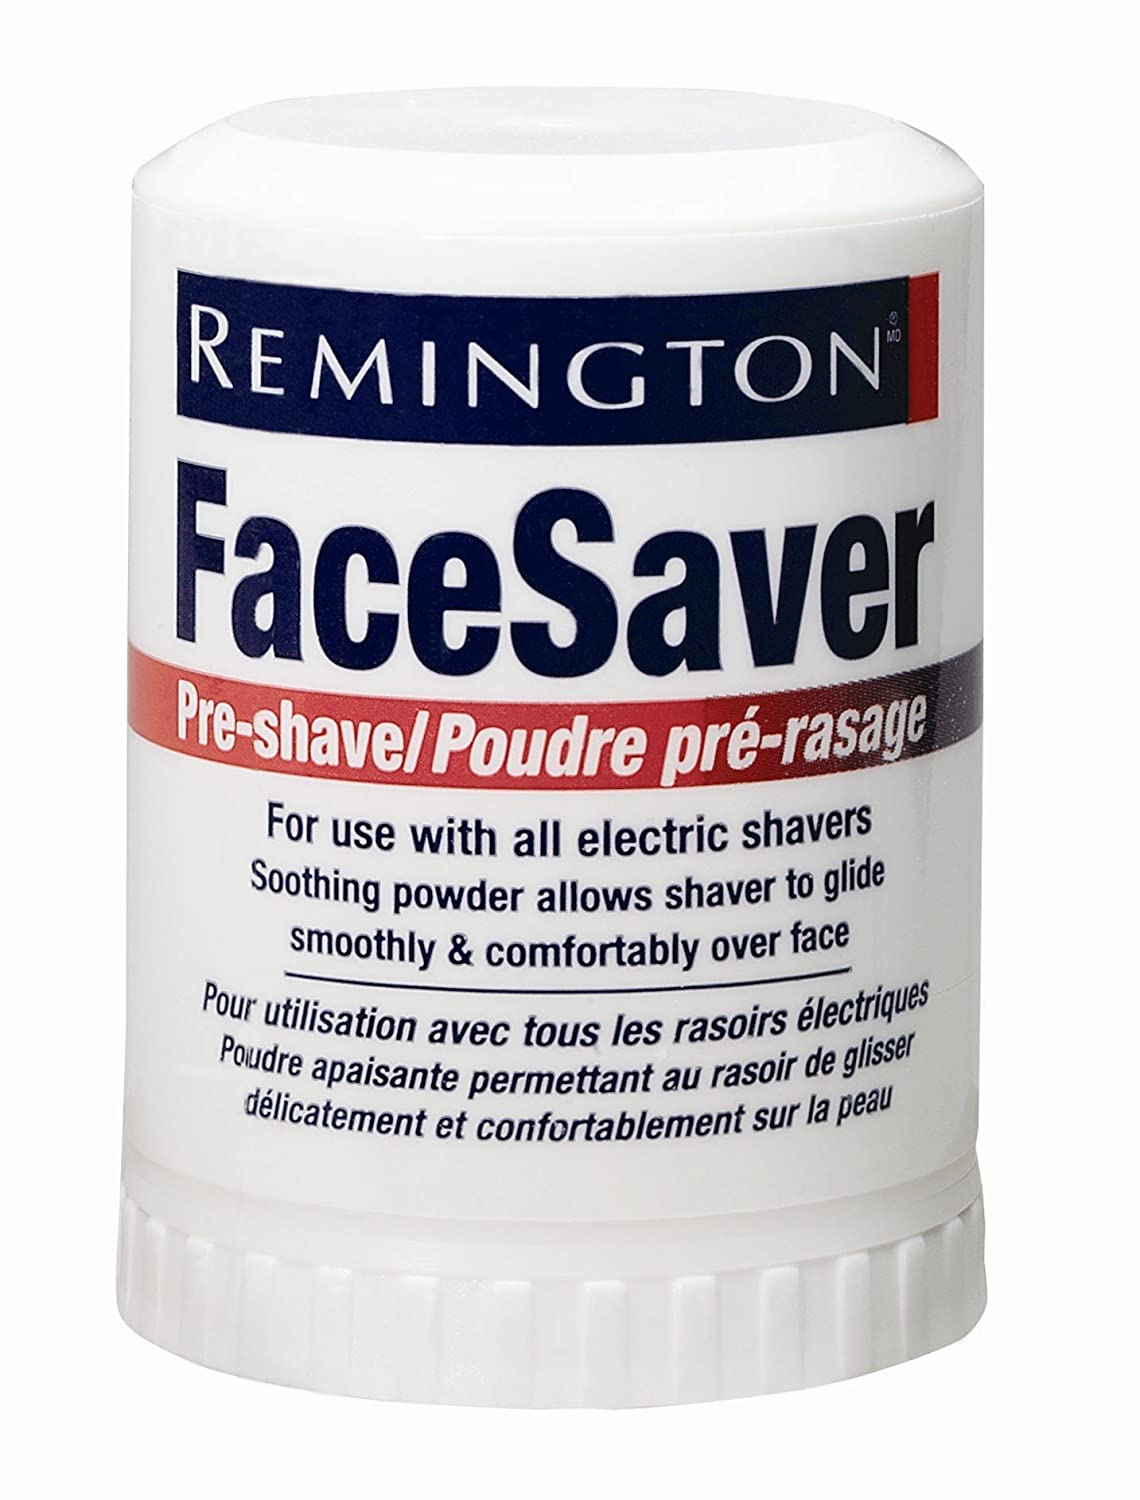 Remington SP-5 Pre-Shave Talc Stick Face Saver For all Men's Shavers, Net Weight. 2.1 Ounce/ 60 g (Pack of 6) 81627-6PACK